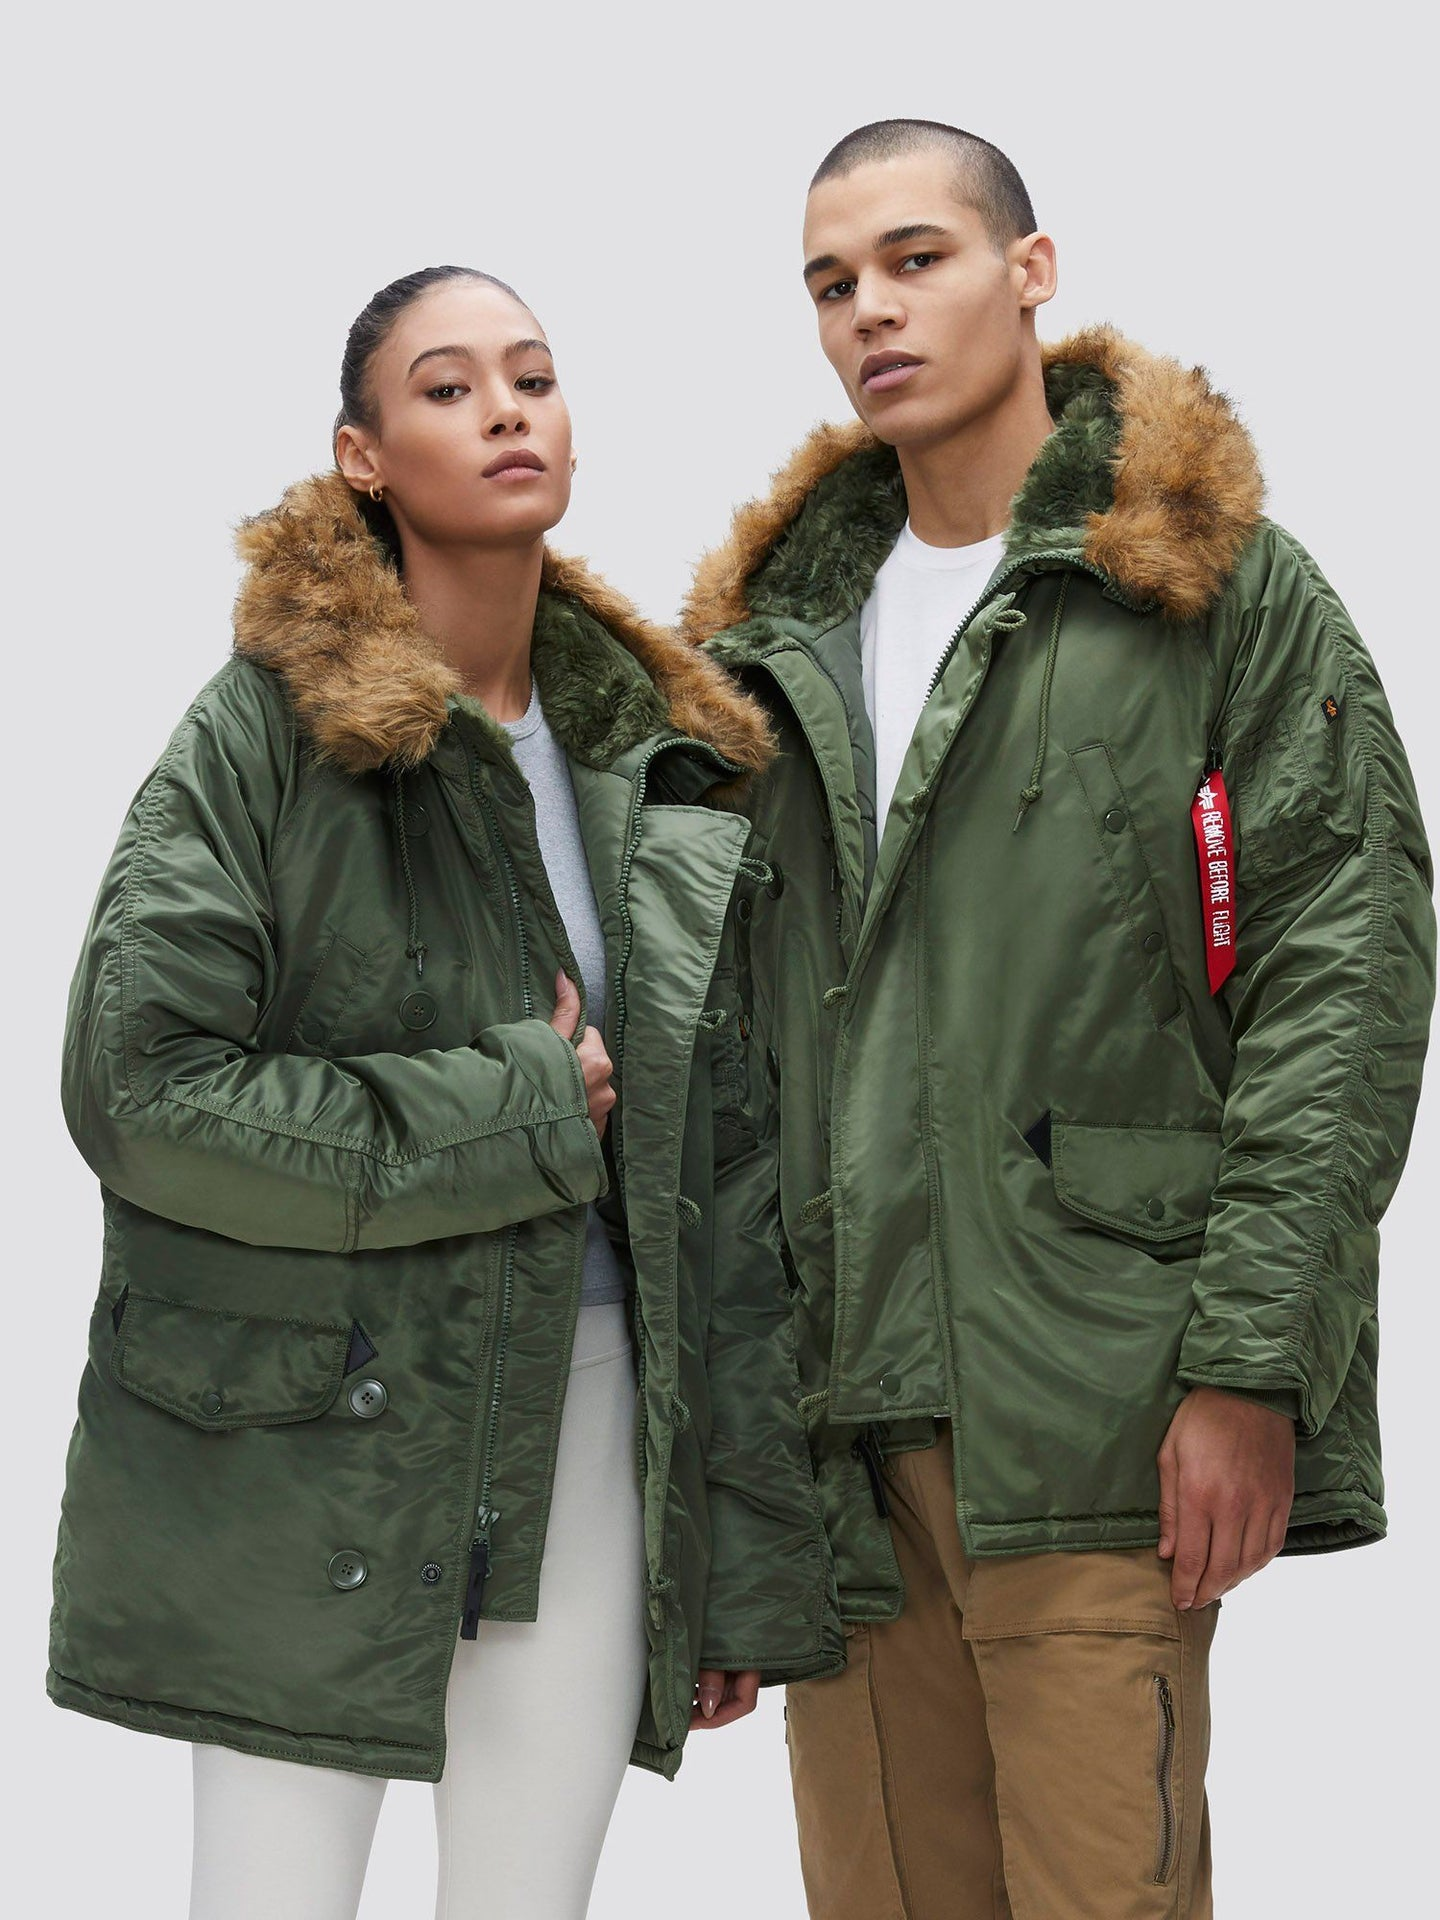 N-3B PARKA (HERITAGE) OUTERWEAR Alpha Industries SAGE GREEN XS